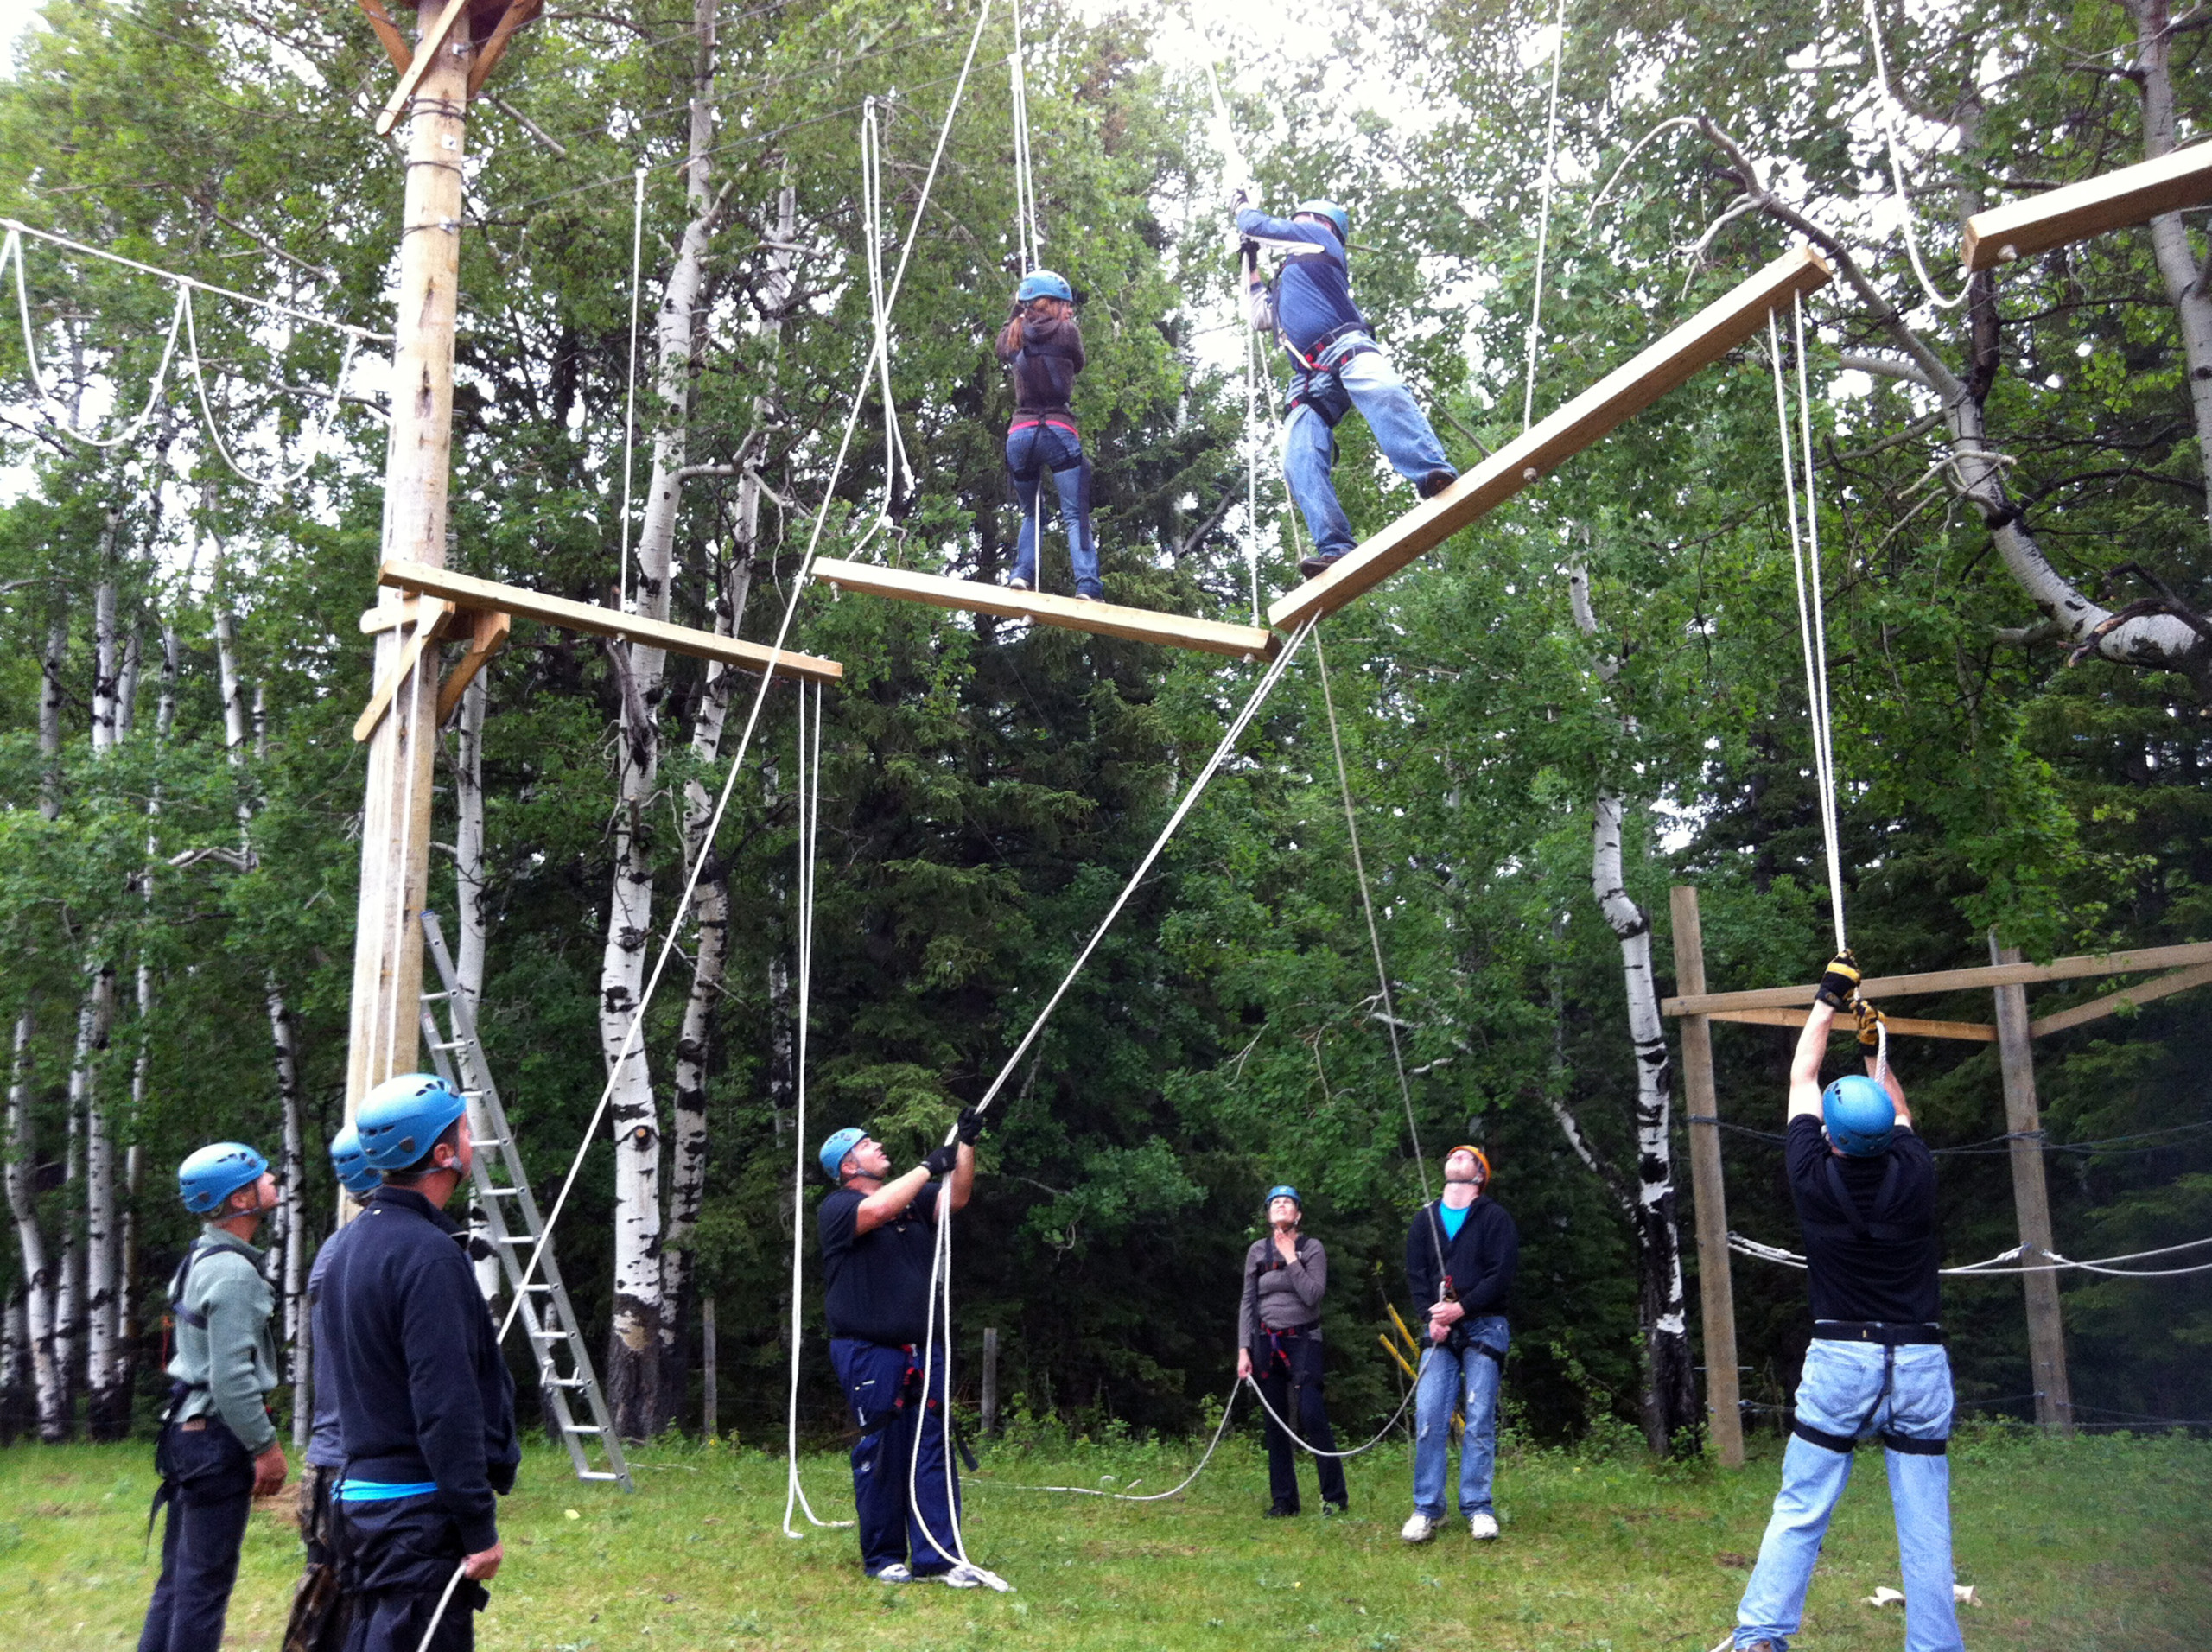 High ropes challenge, teamwork, communication